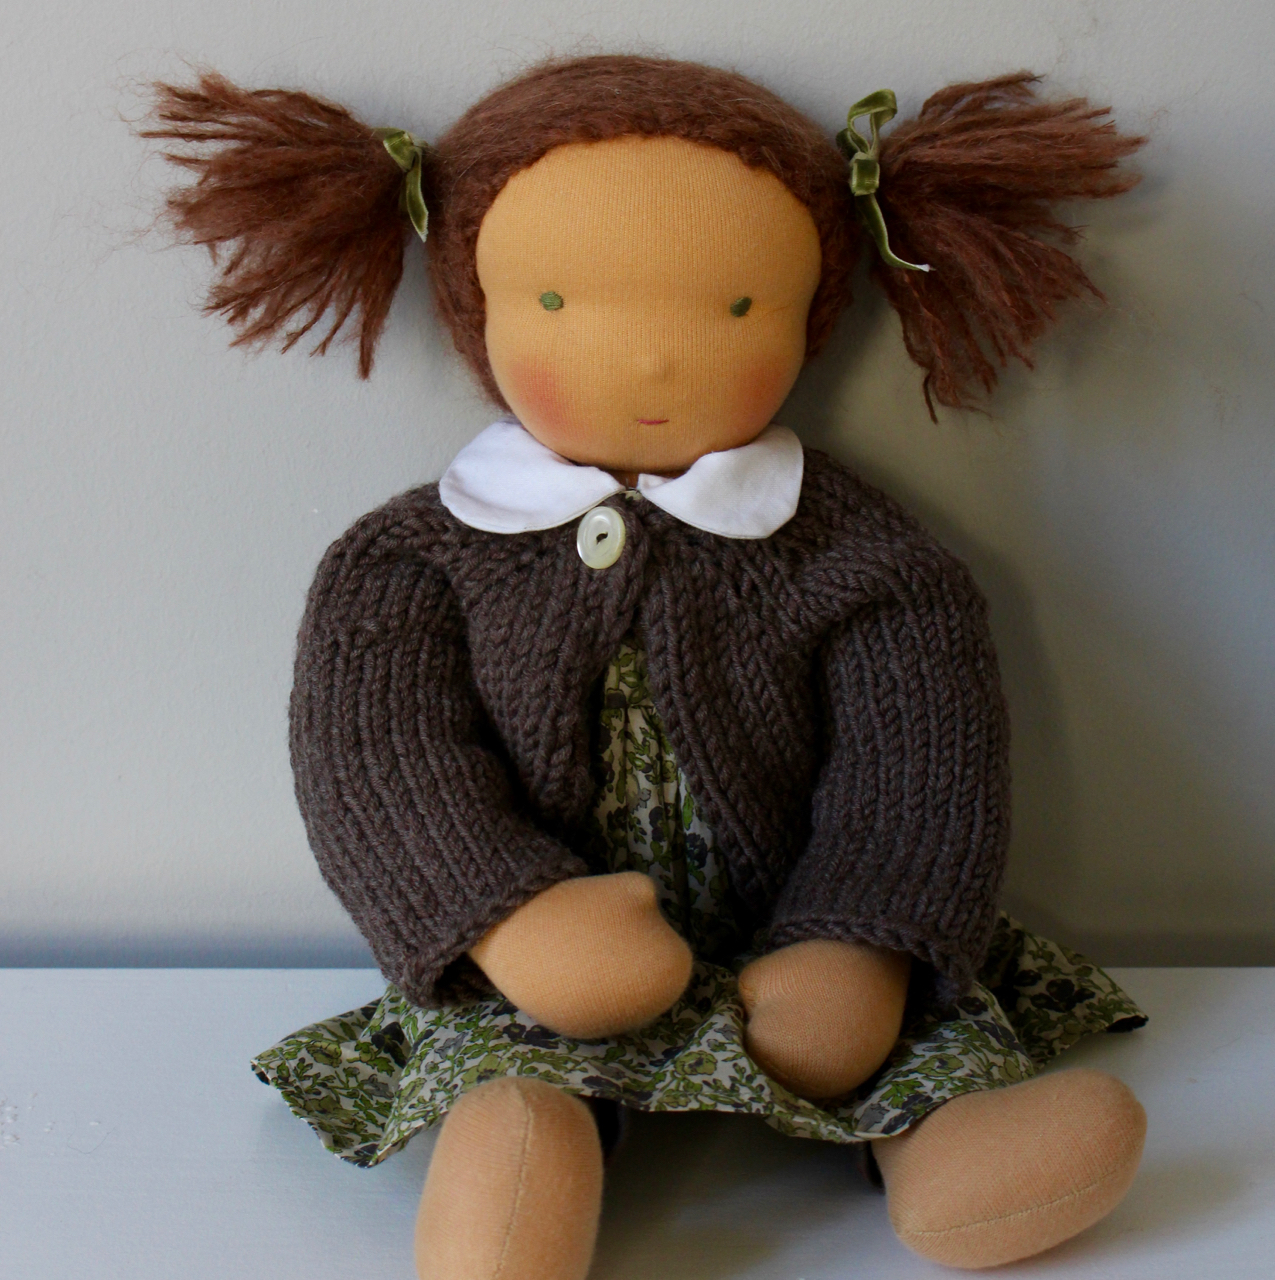 Waldorf doll girl in greenish liberty dresss, brown hair, made by feinslieb